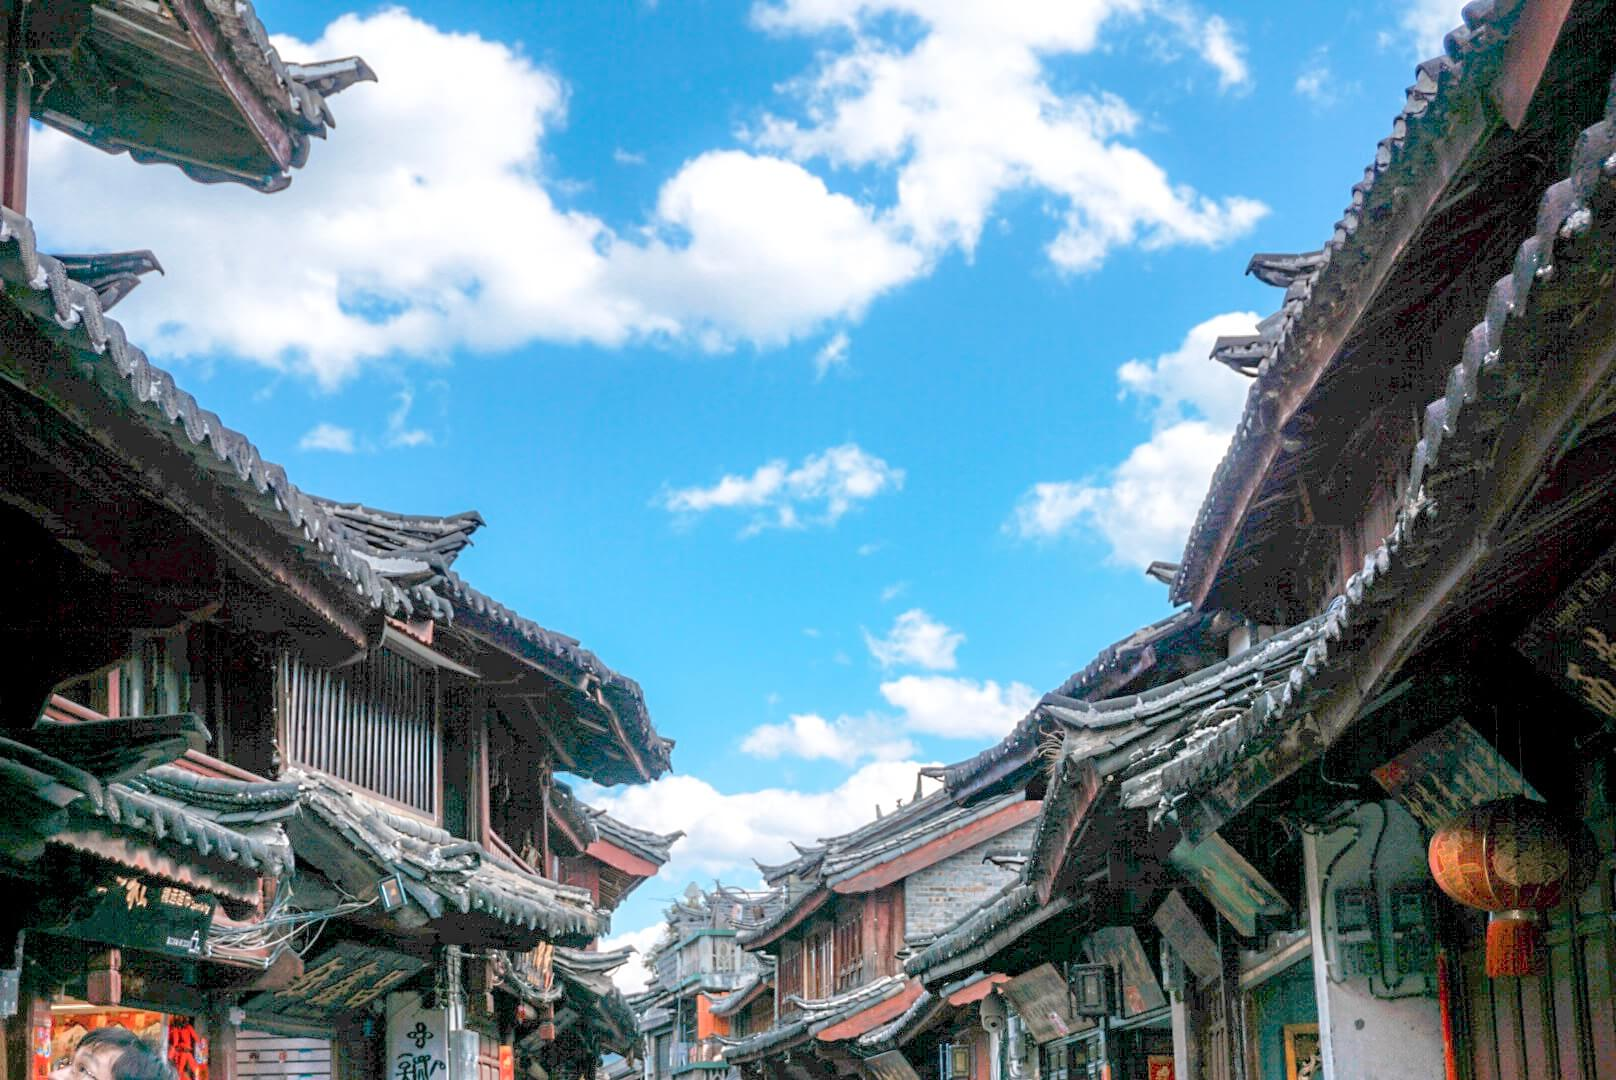 visiter le Yunnan Lijiang chine vieille ville naxis